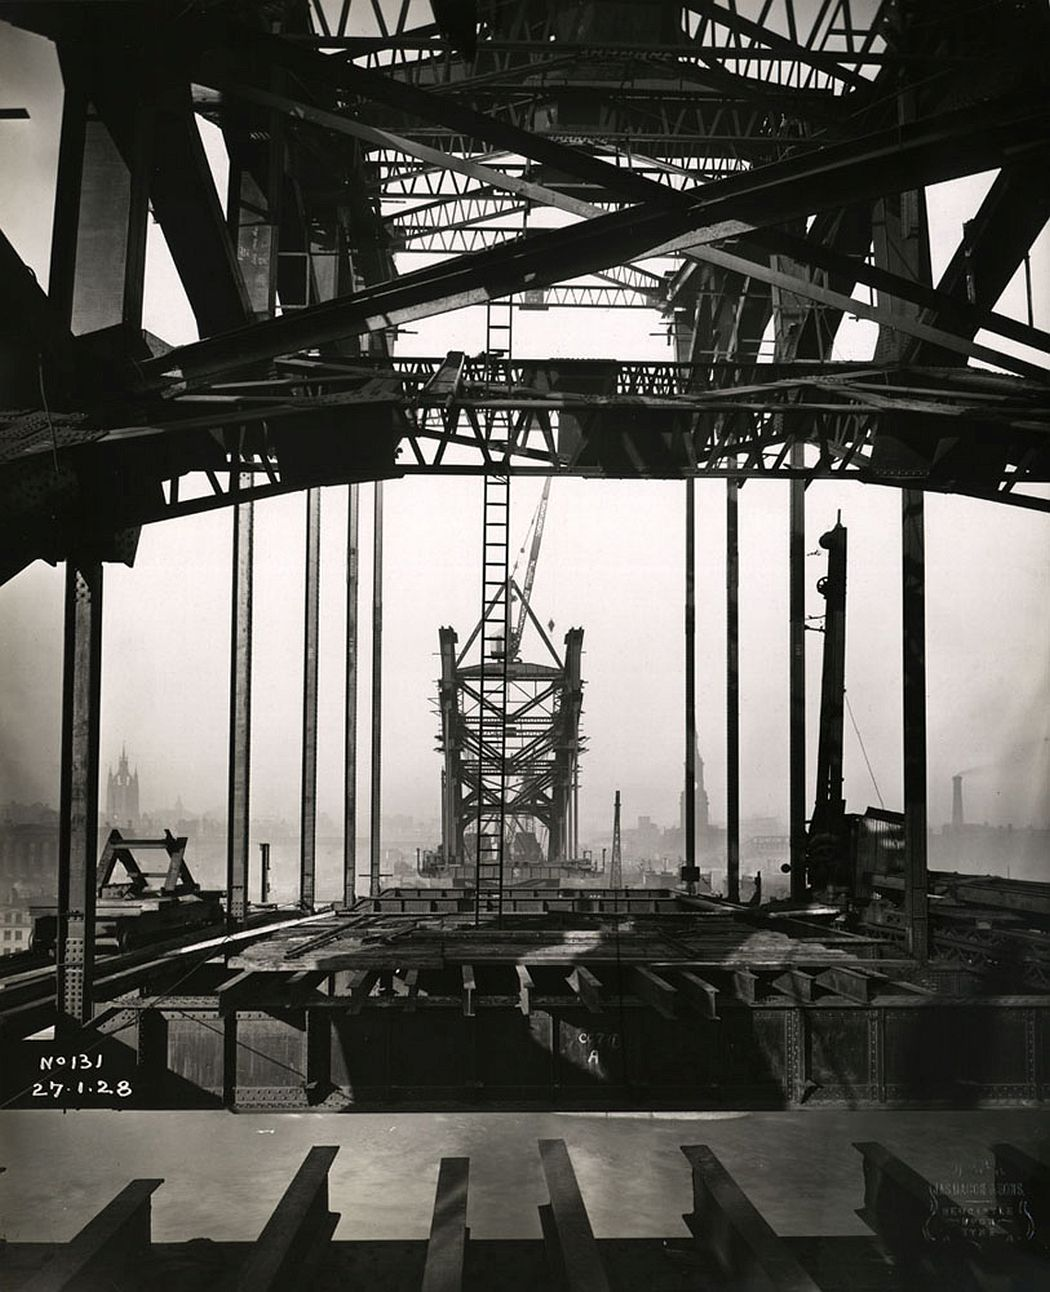 View through the girders from the Gateshead side of the Tyne Bridge to the Newcastle side, 27 January 1928